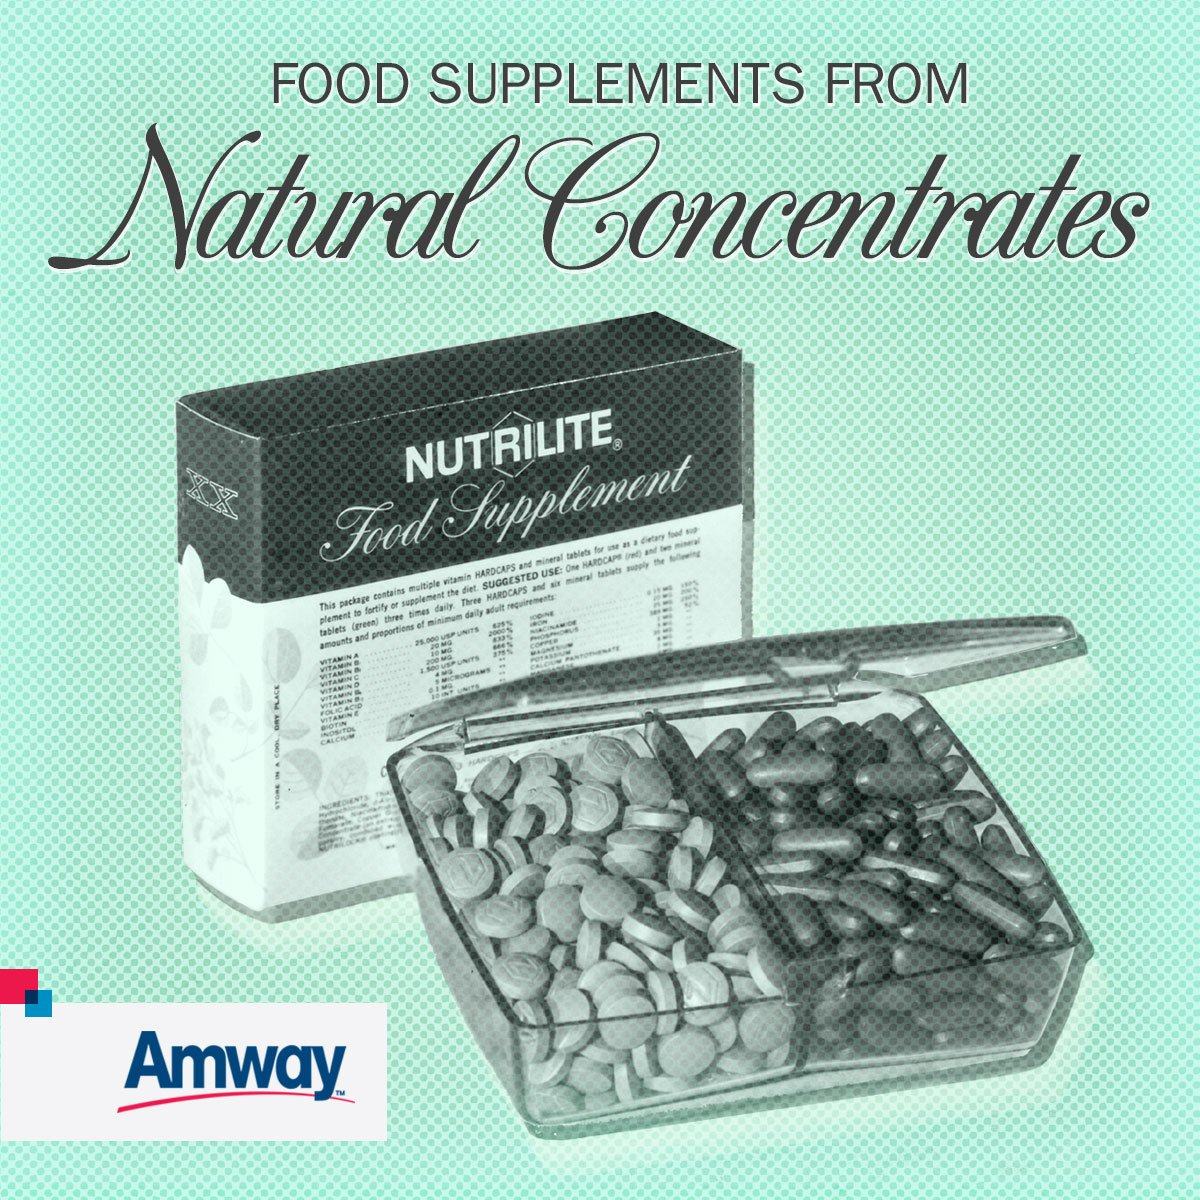 ONE SUPPLEMENT, MANY ESSENTIALS: We created Double X in 1948. Today, it's the top selling #Nutrilite product! #TBT https://t.co/SQheMCEsqH